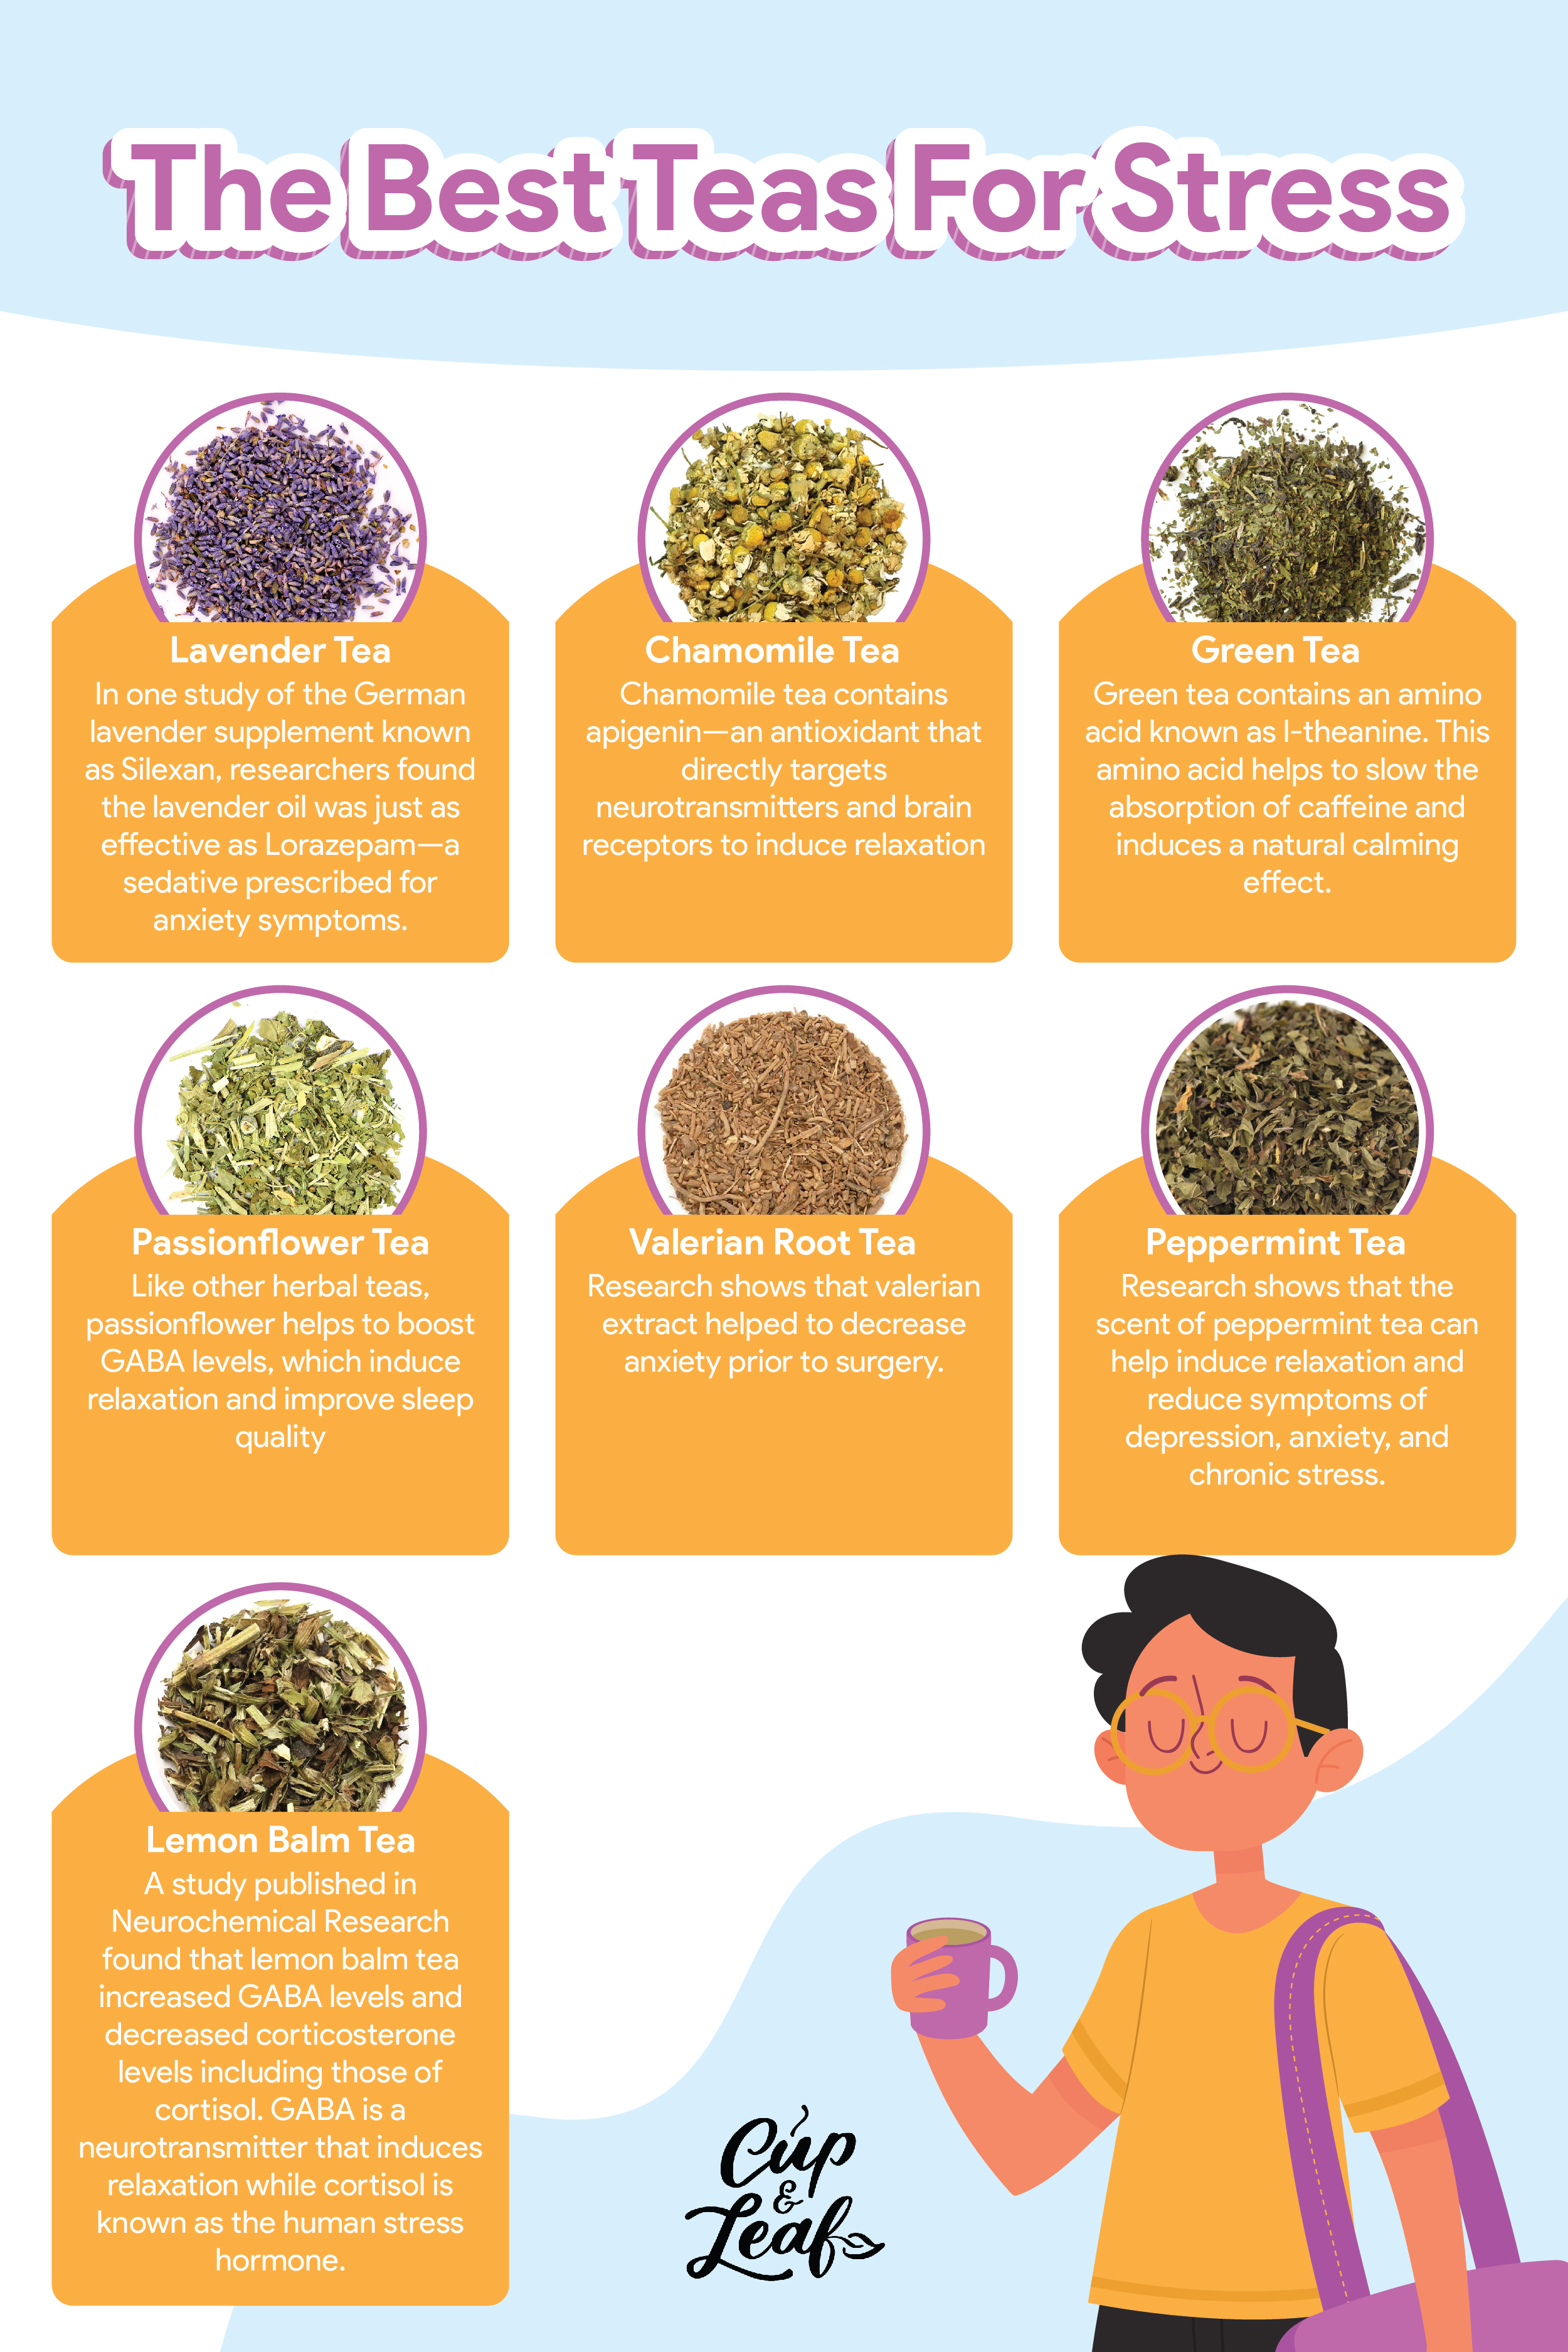 The 9 Best Teas For Stress and Depression - Cup & Leaf